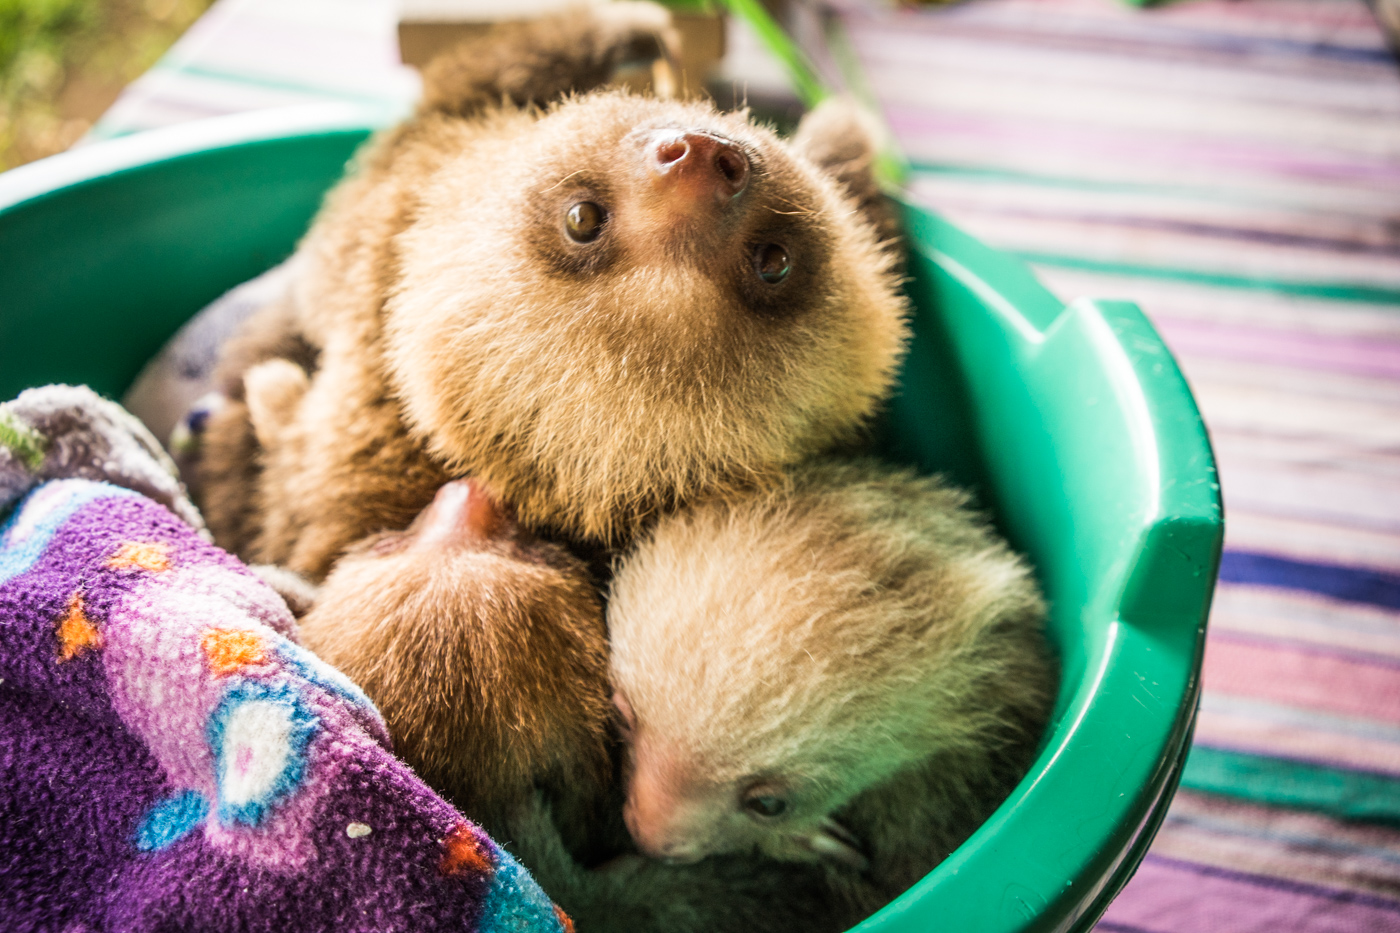 adorable baby sloths at the Toucan Rescue Ranch